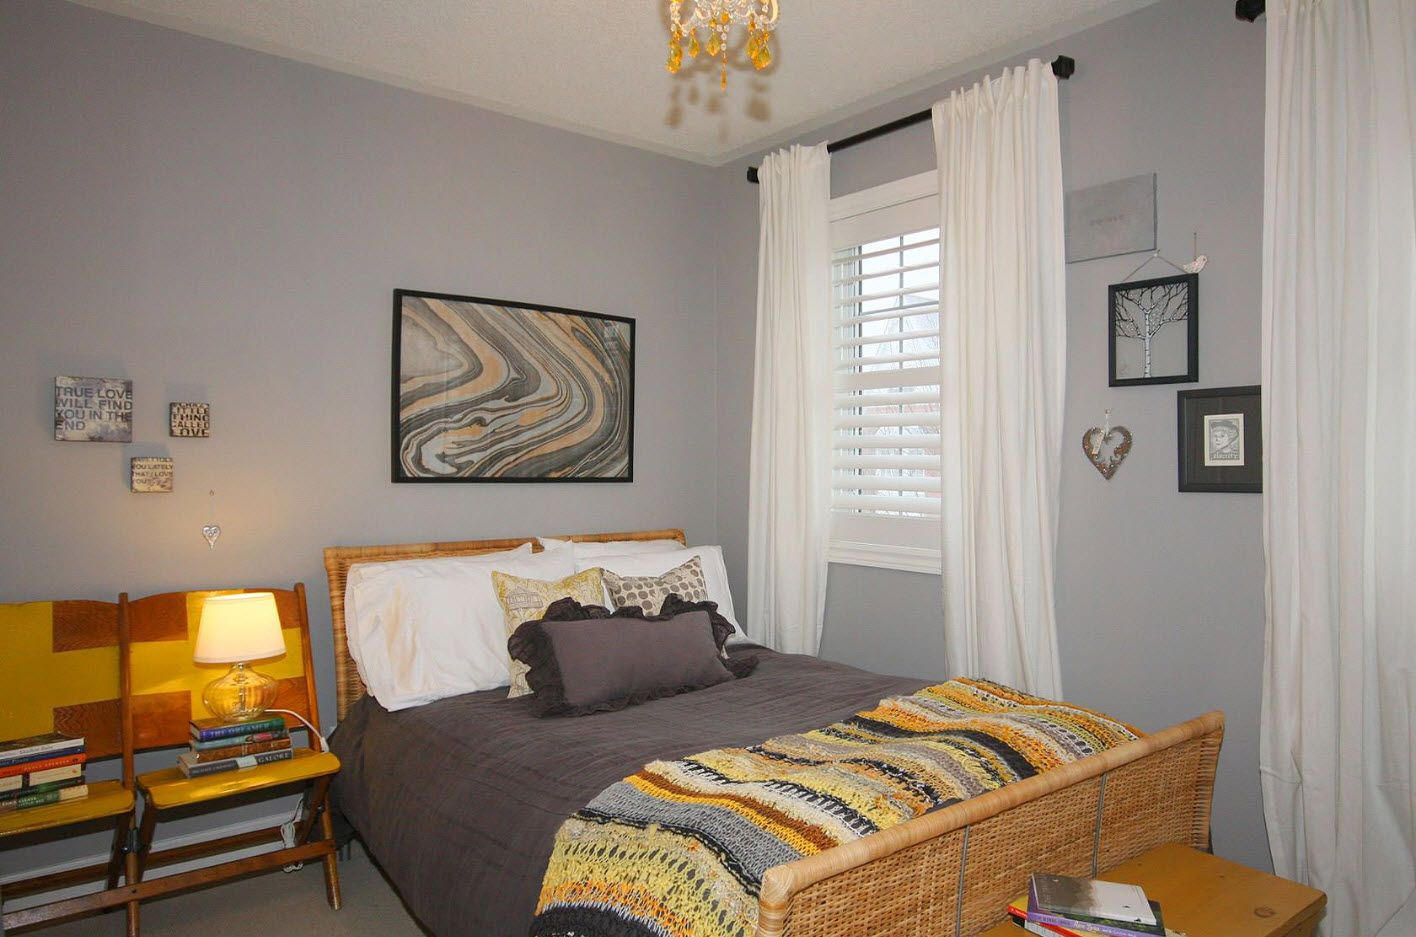 Bedroom Drapes 2017. Design, Forms, Real Examples with Photos. Fancy expressionistic picture to dilute the classic color scheme of the room